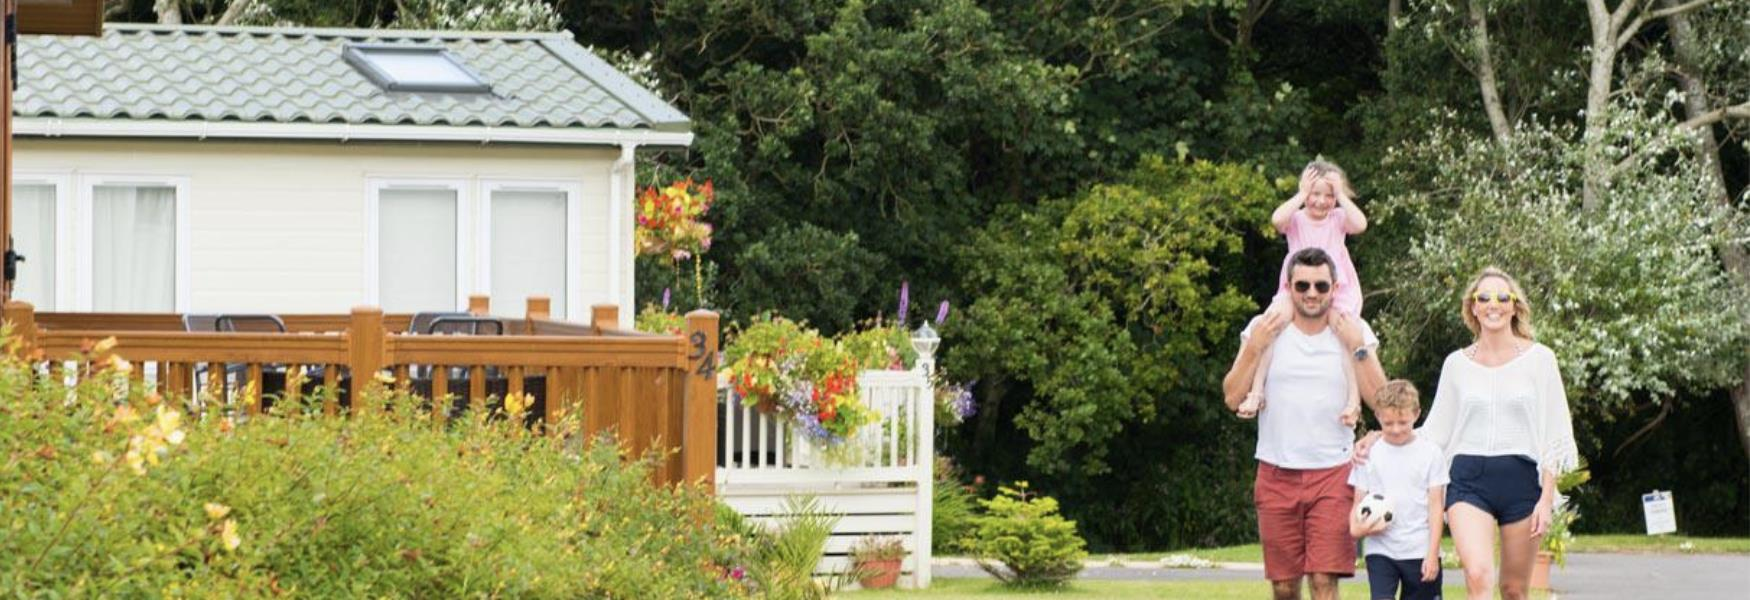 Holiday Park accommodation in Lymington in the New Forest